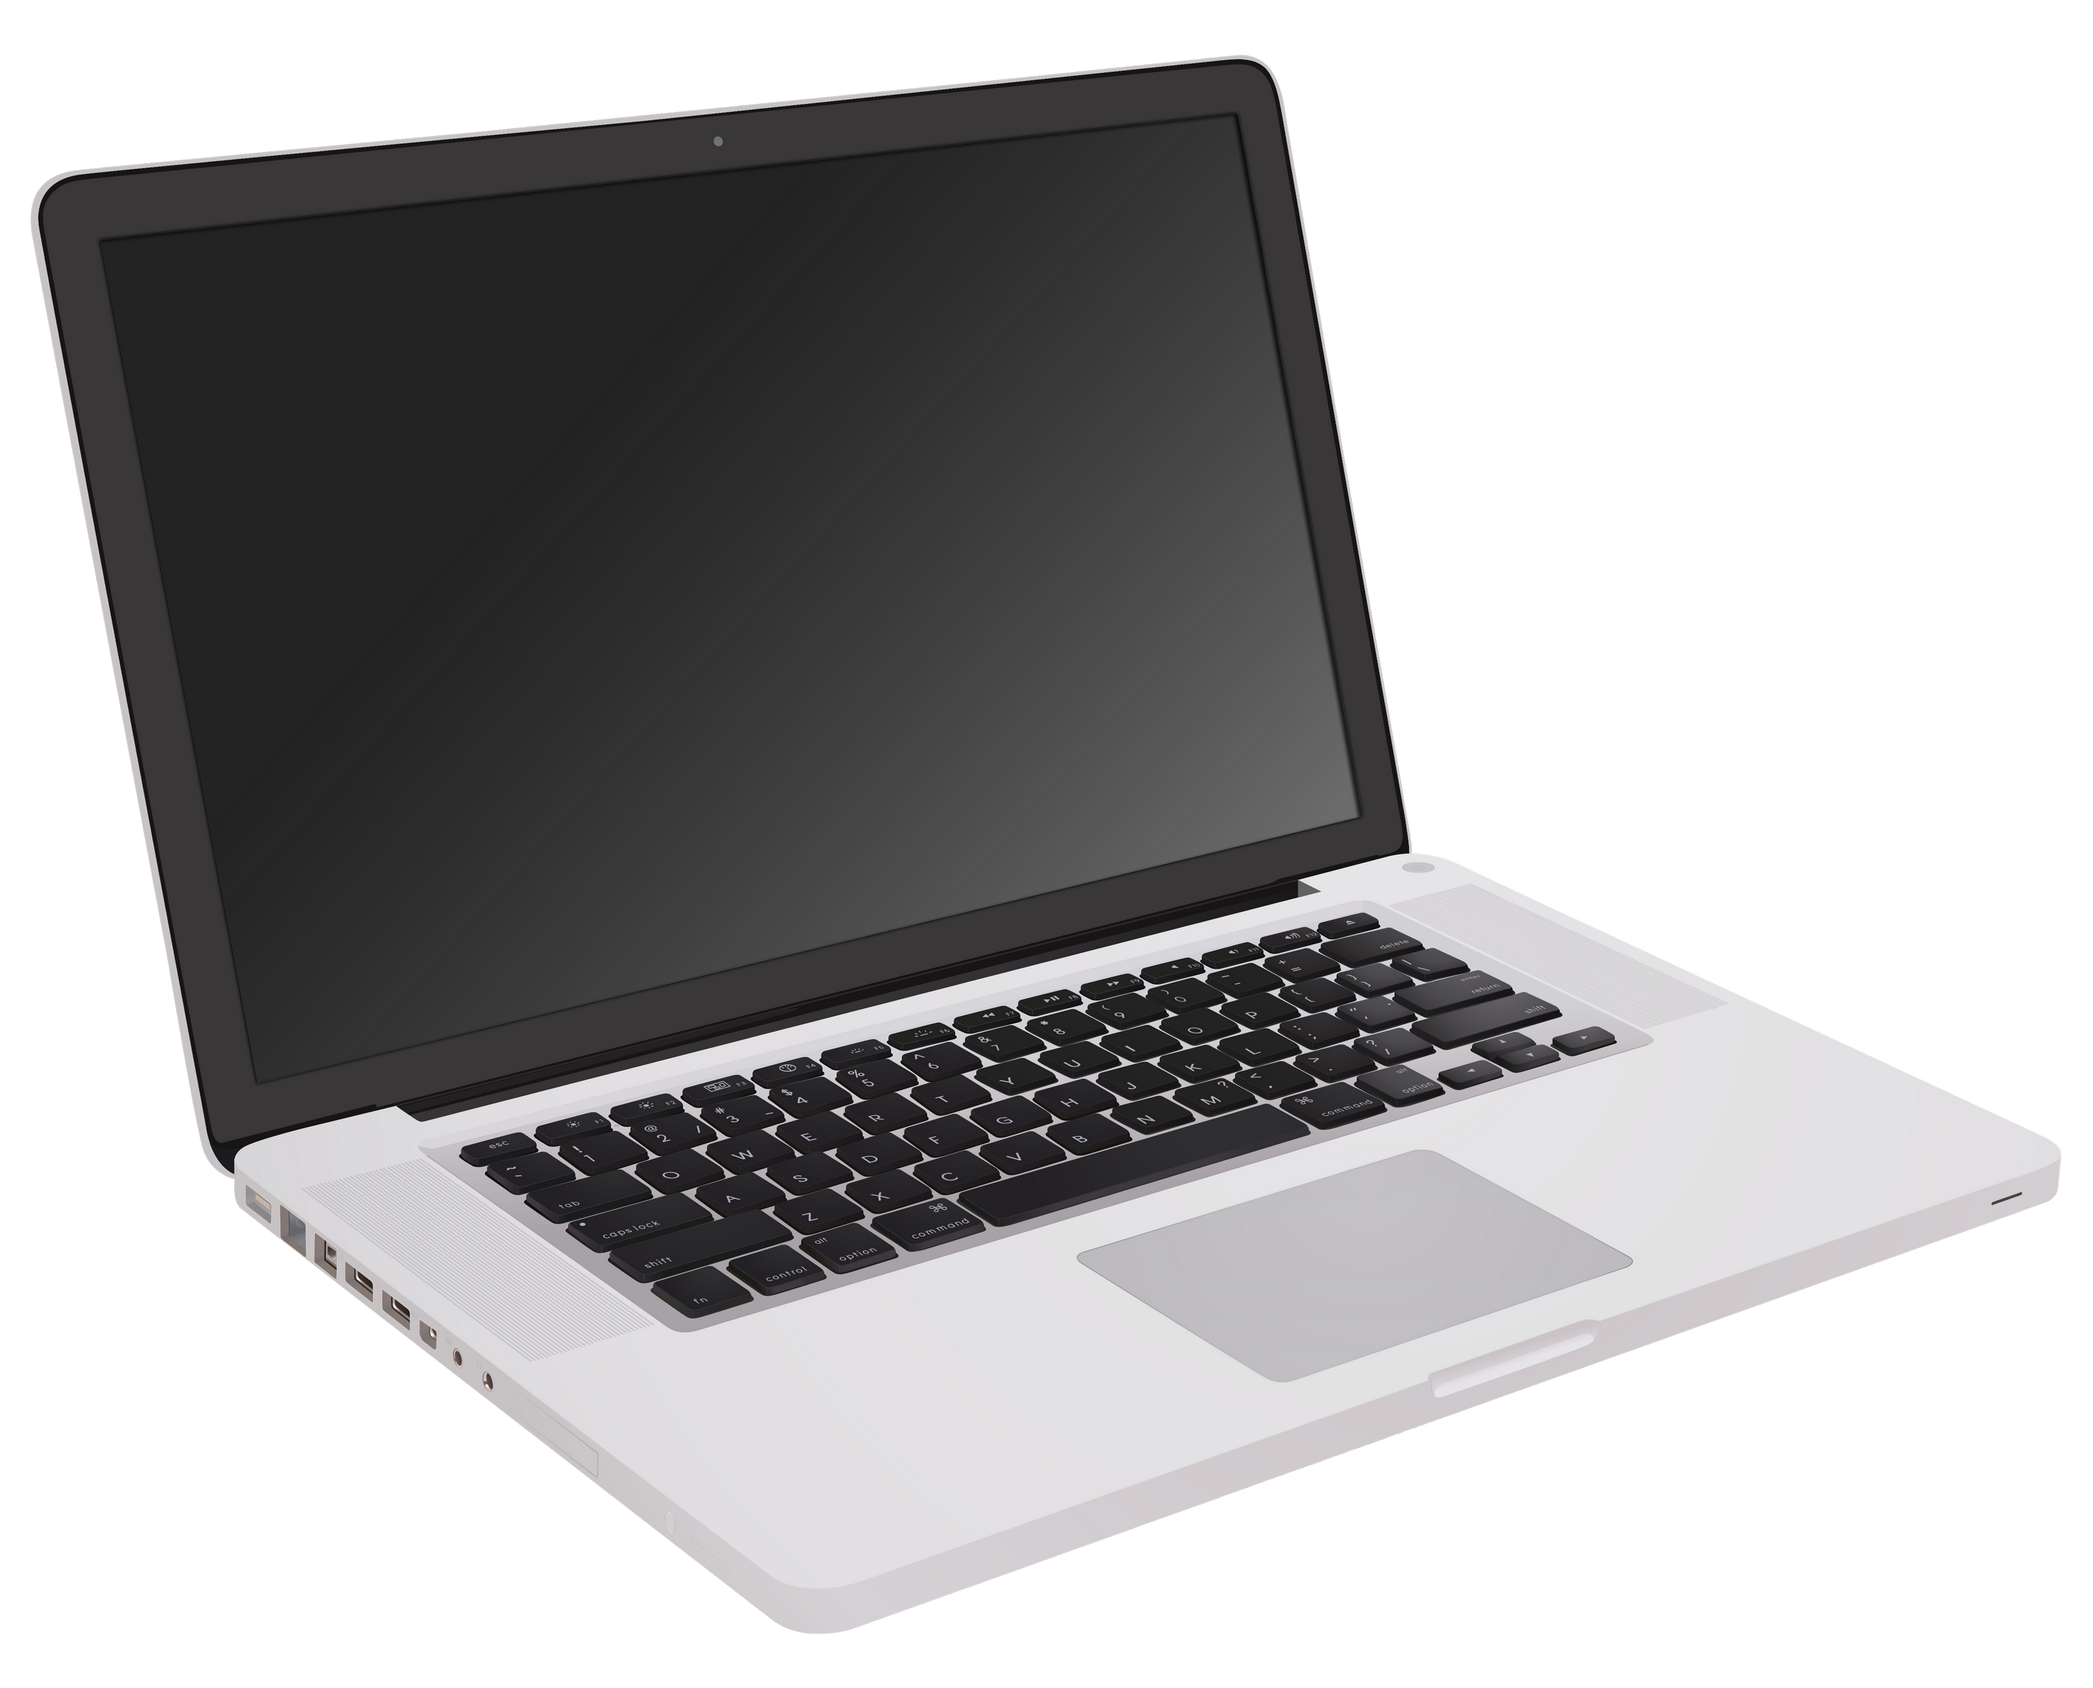 Apple laptop clipart black and white svg stock Macbook PNG Image - PurePNG | Free transparent CC0 PNG Image Library svg stock